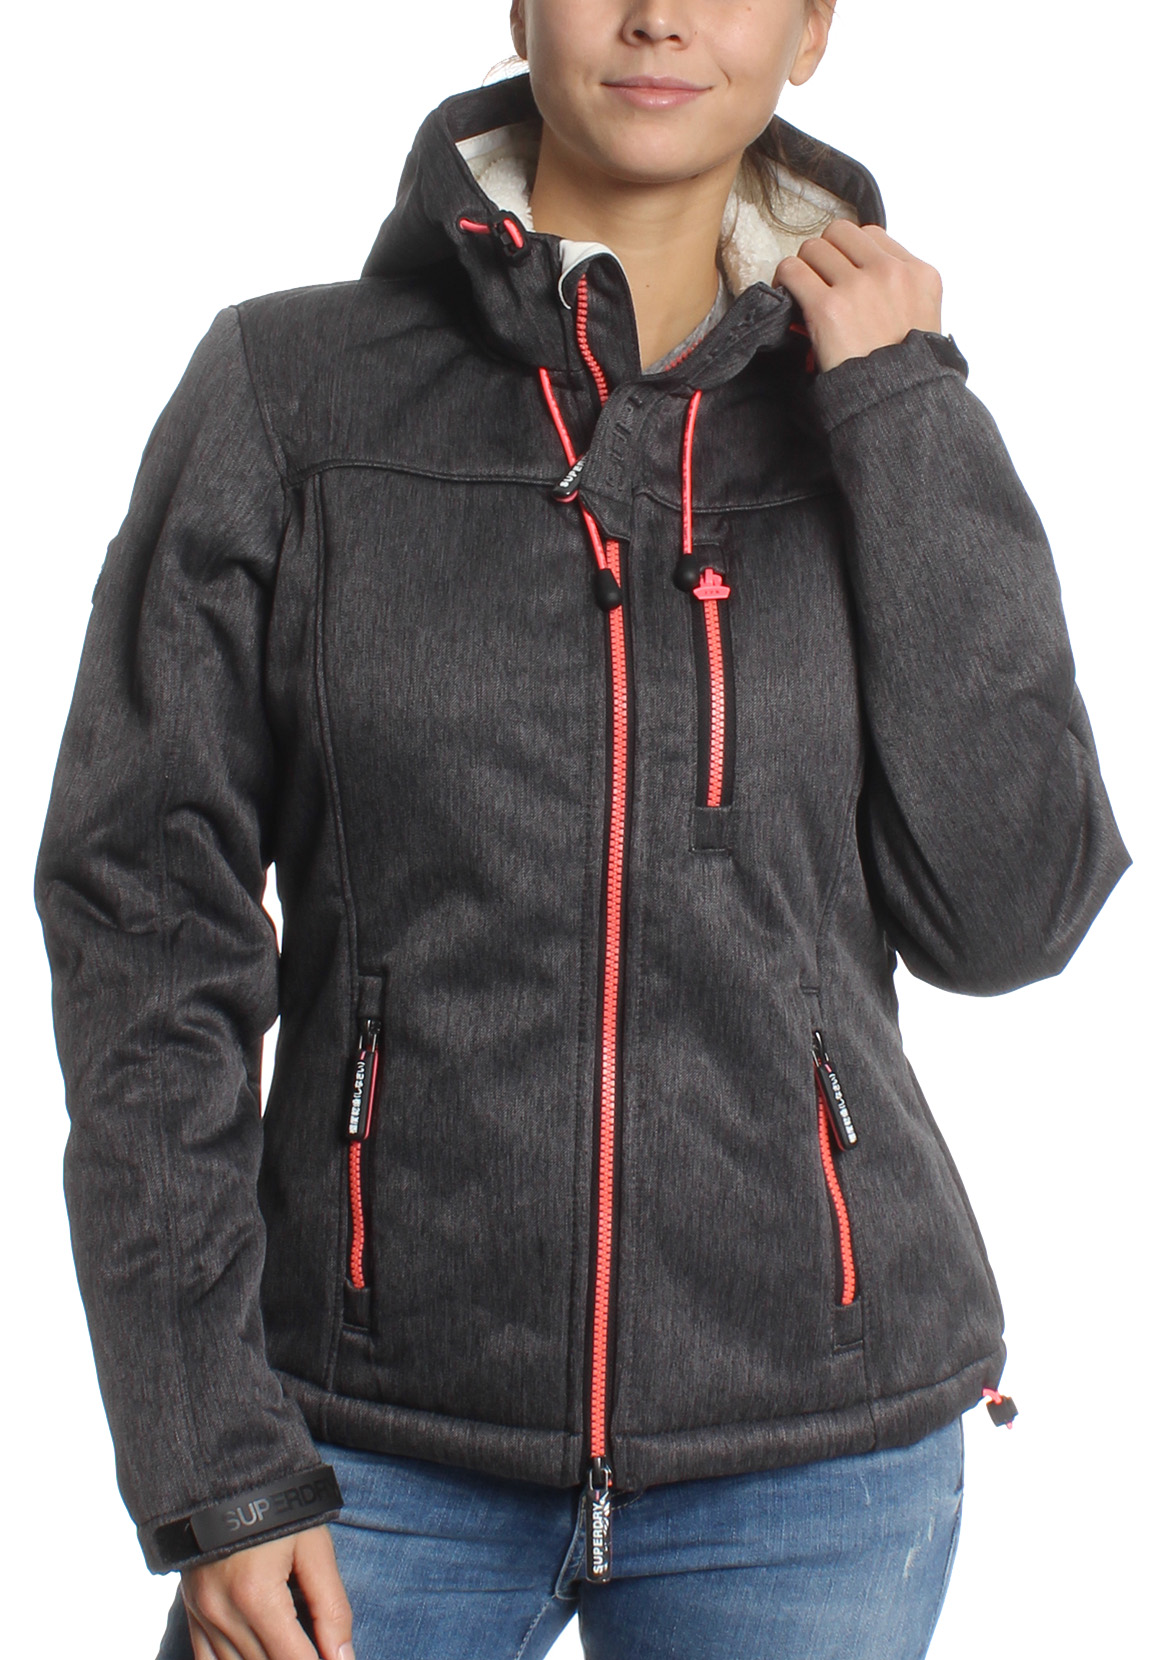 reputable site c99f2 f6138 Superdry Jacke Damen HOODED SHERPA WINDTREKKER Black Grit Candy Pink